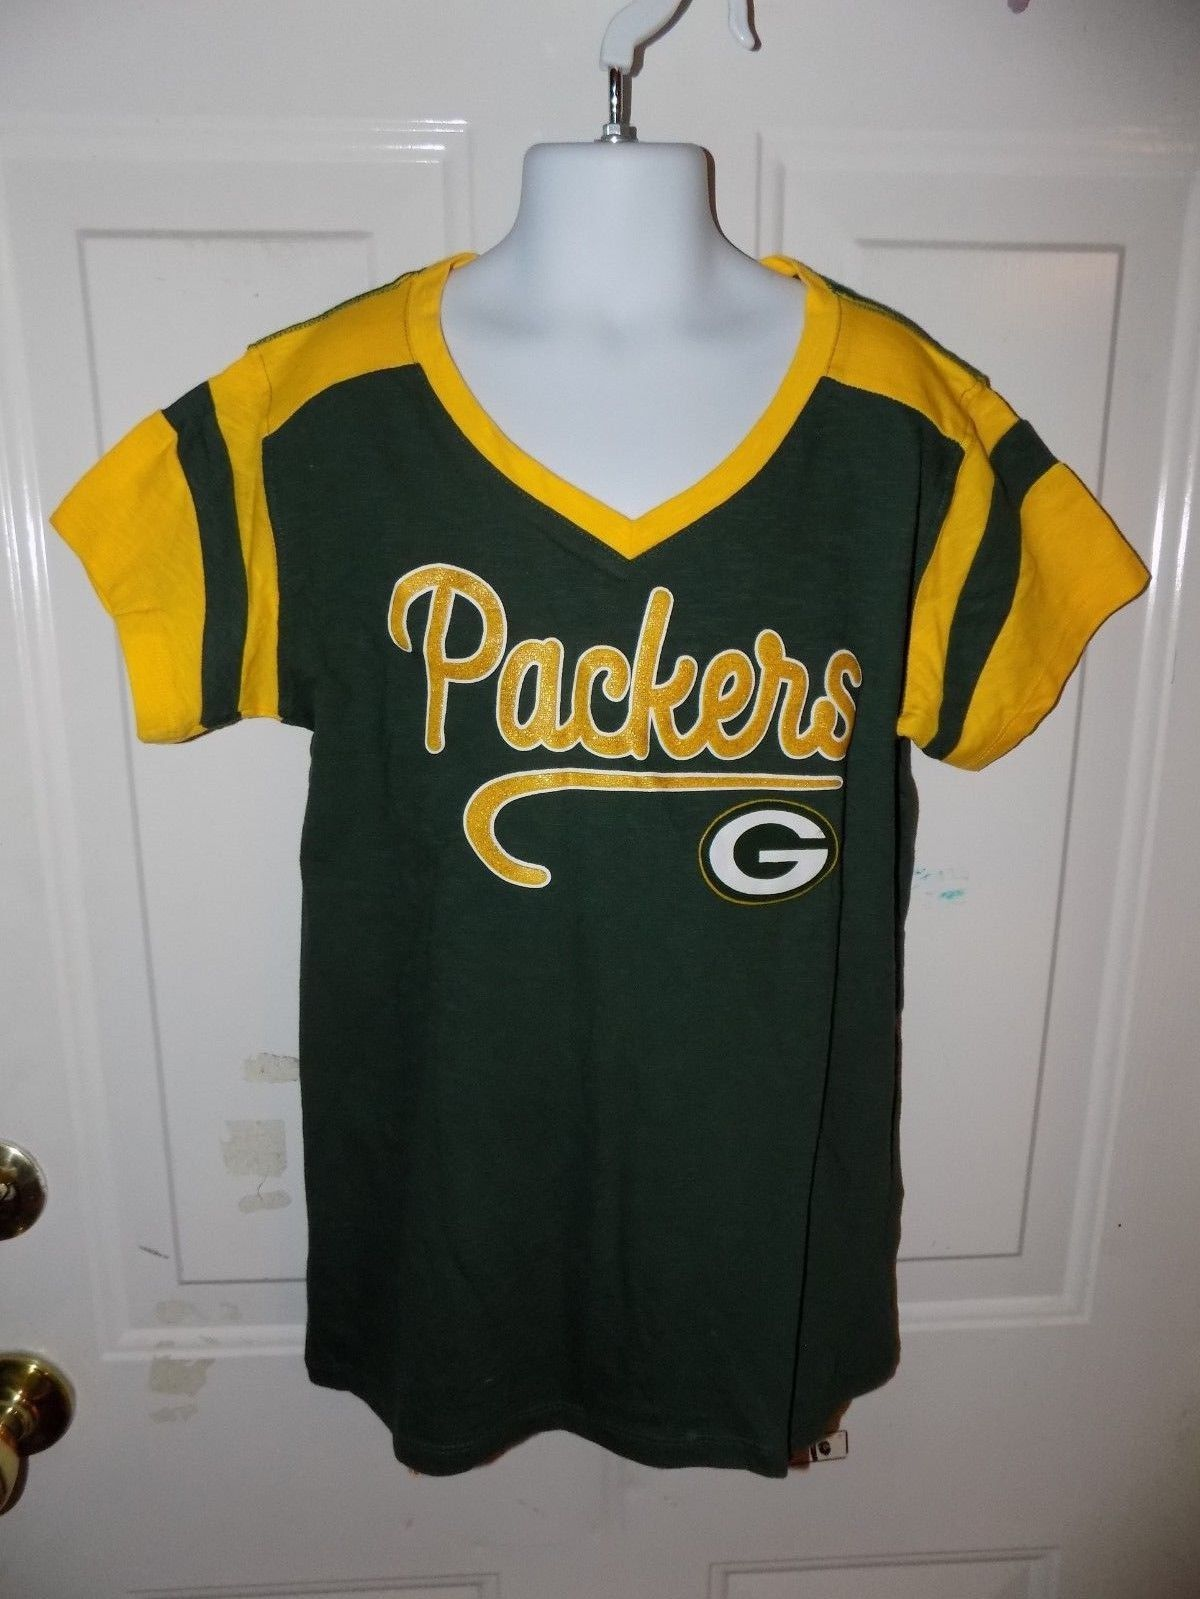 NFL TEAM APPAREL GREEN BAY PACKERS V-NECK T-SHIRT SIZE 10/12 GIRL'S EUC